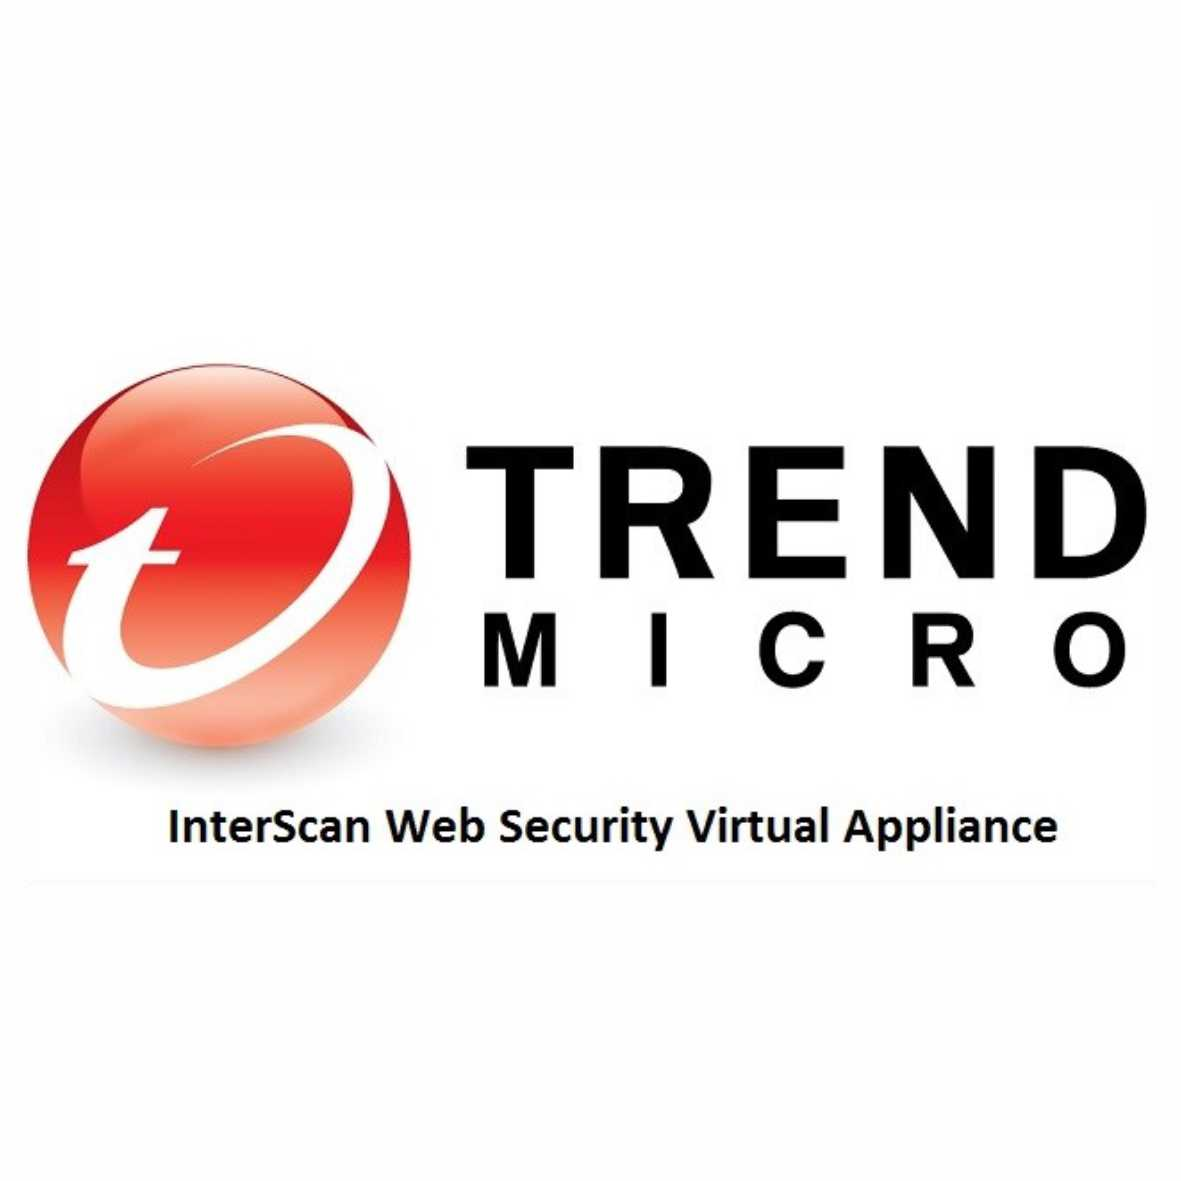 InterScan Web Security Virtual Appliance